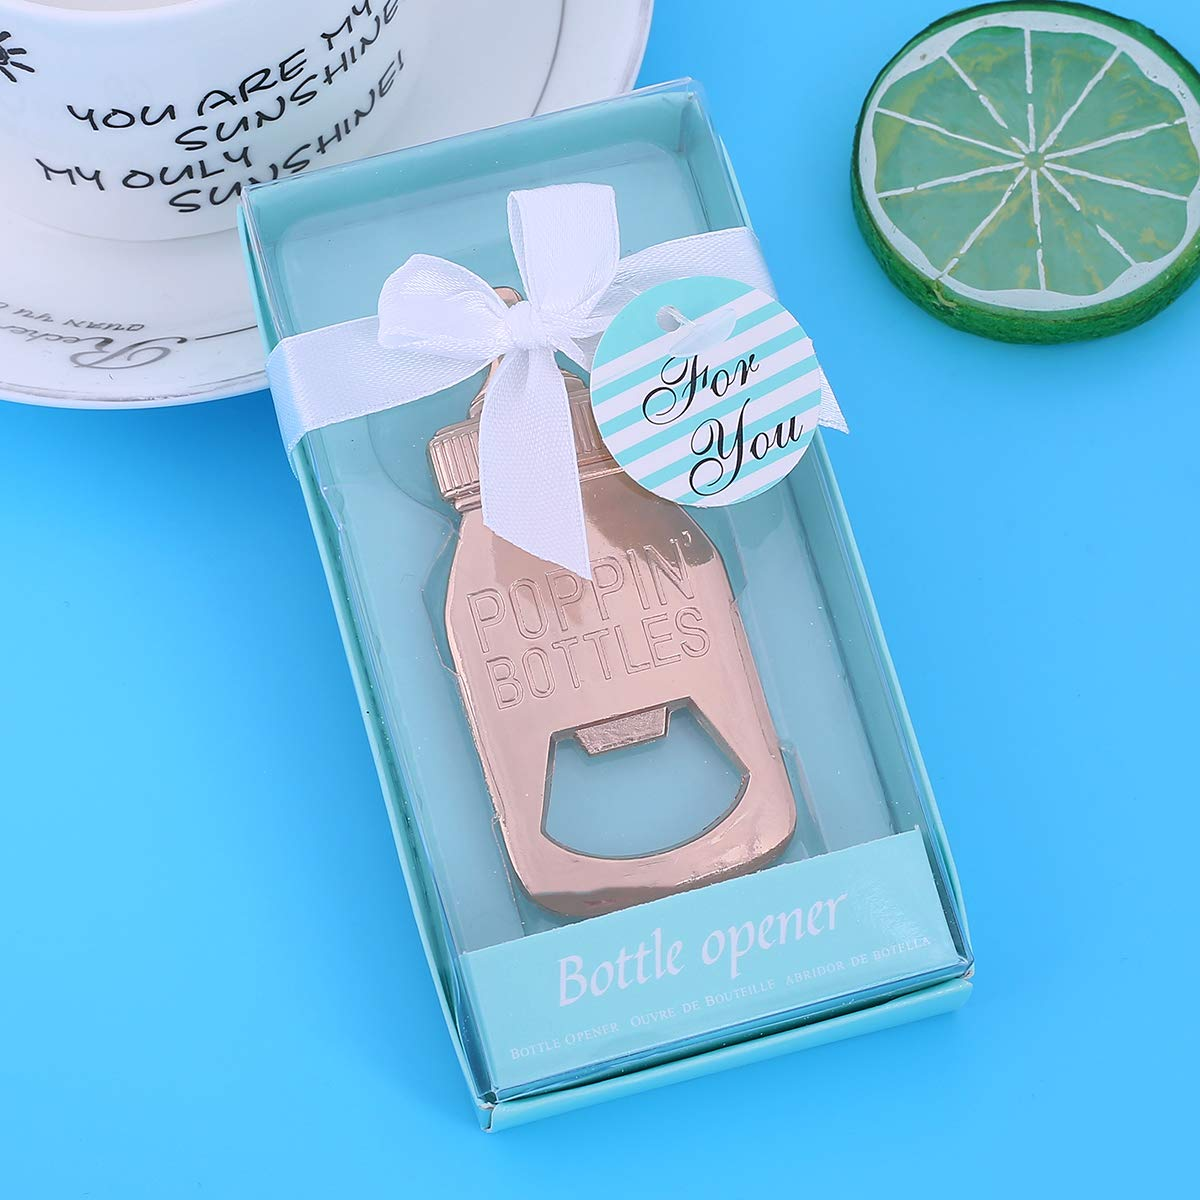 24 pcs Baby Shower Return Gifts for Guest Supplies Poppin Baby Bottle Shaped Bottle Opener Wedding Favor with Exquisite Packaging Party Souvenirs Gift Decorations by WeddParty (Blue 24pcs) by WeddPtyFr (Image #4)